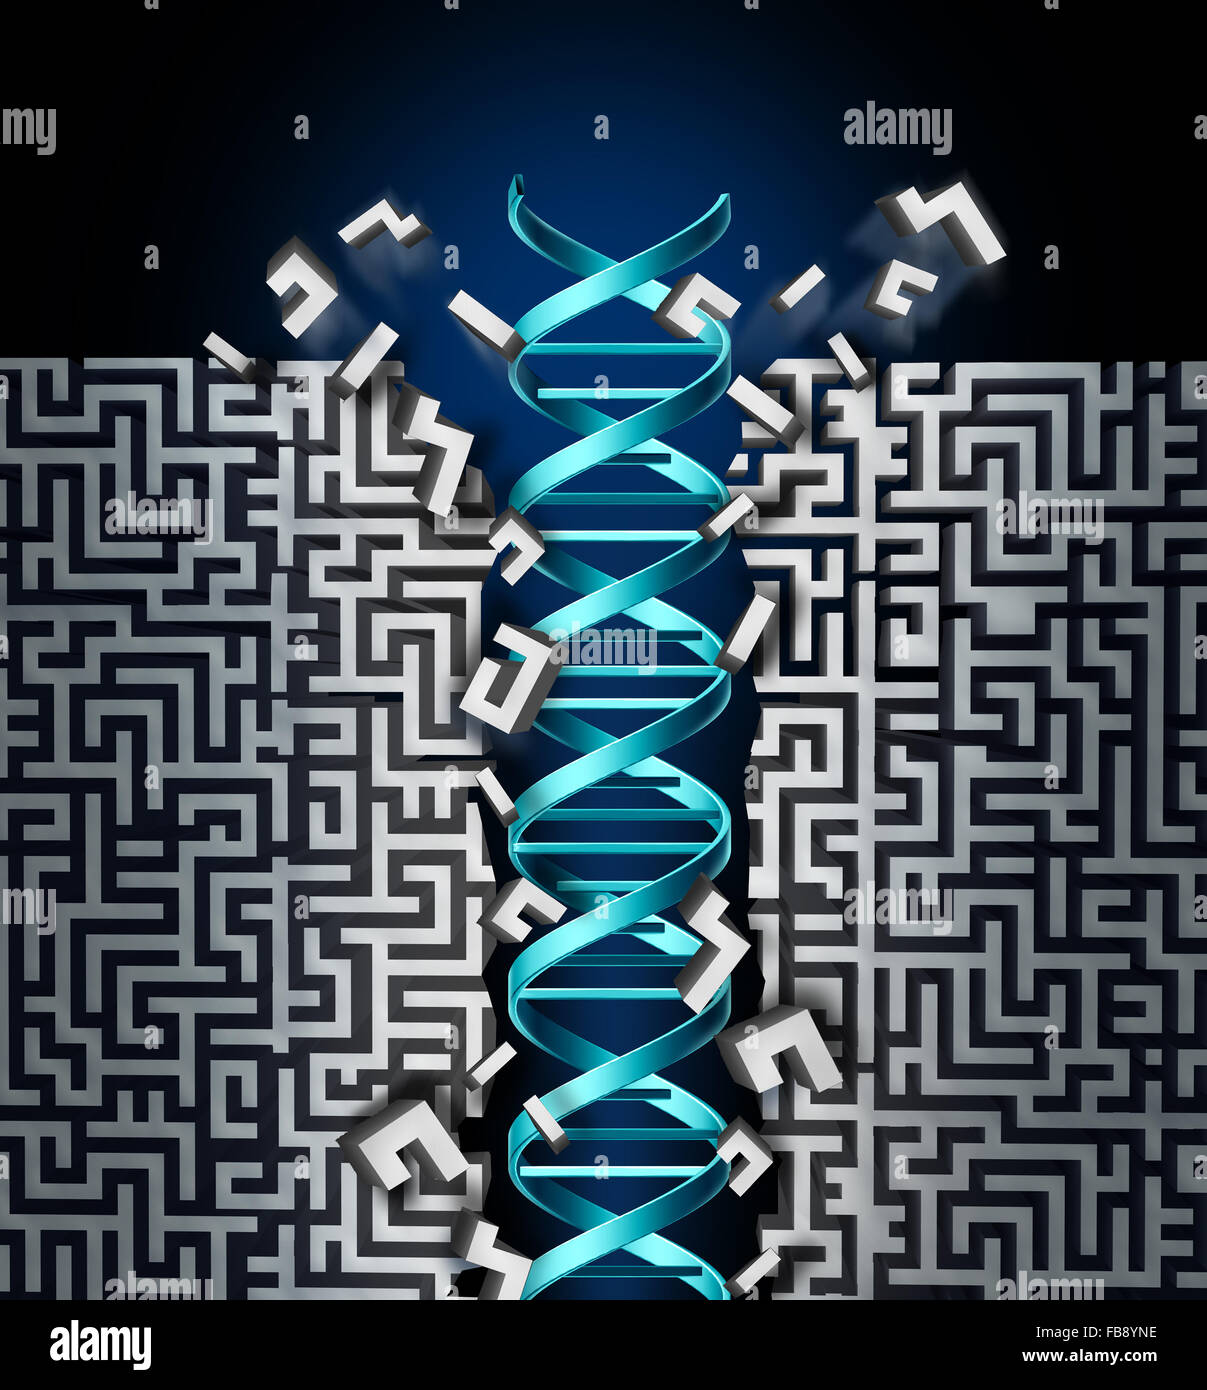 Genetic research success concept as a medical scientific breakthrough symbol with a dna strand breaking through - Stock Image